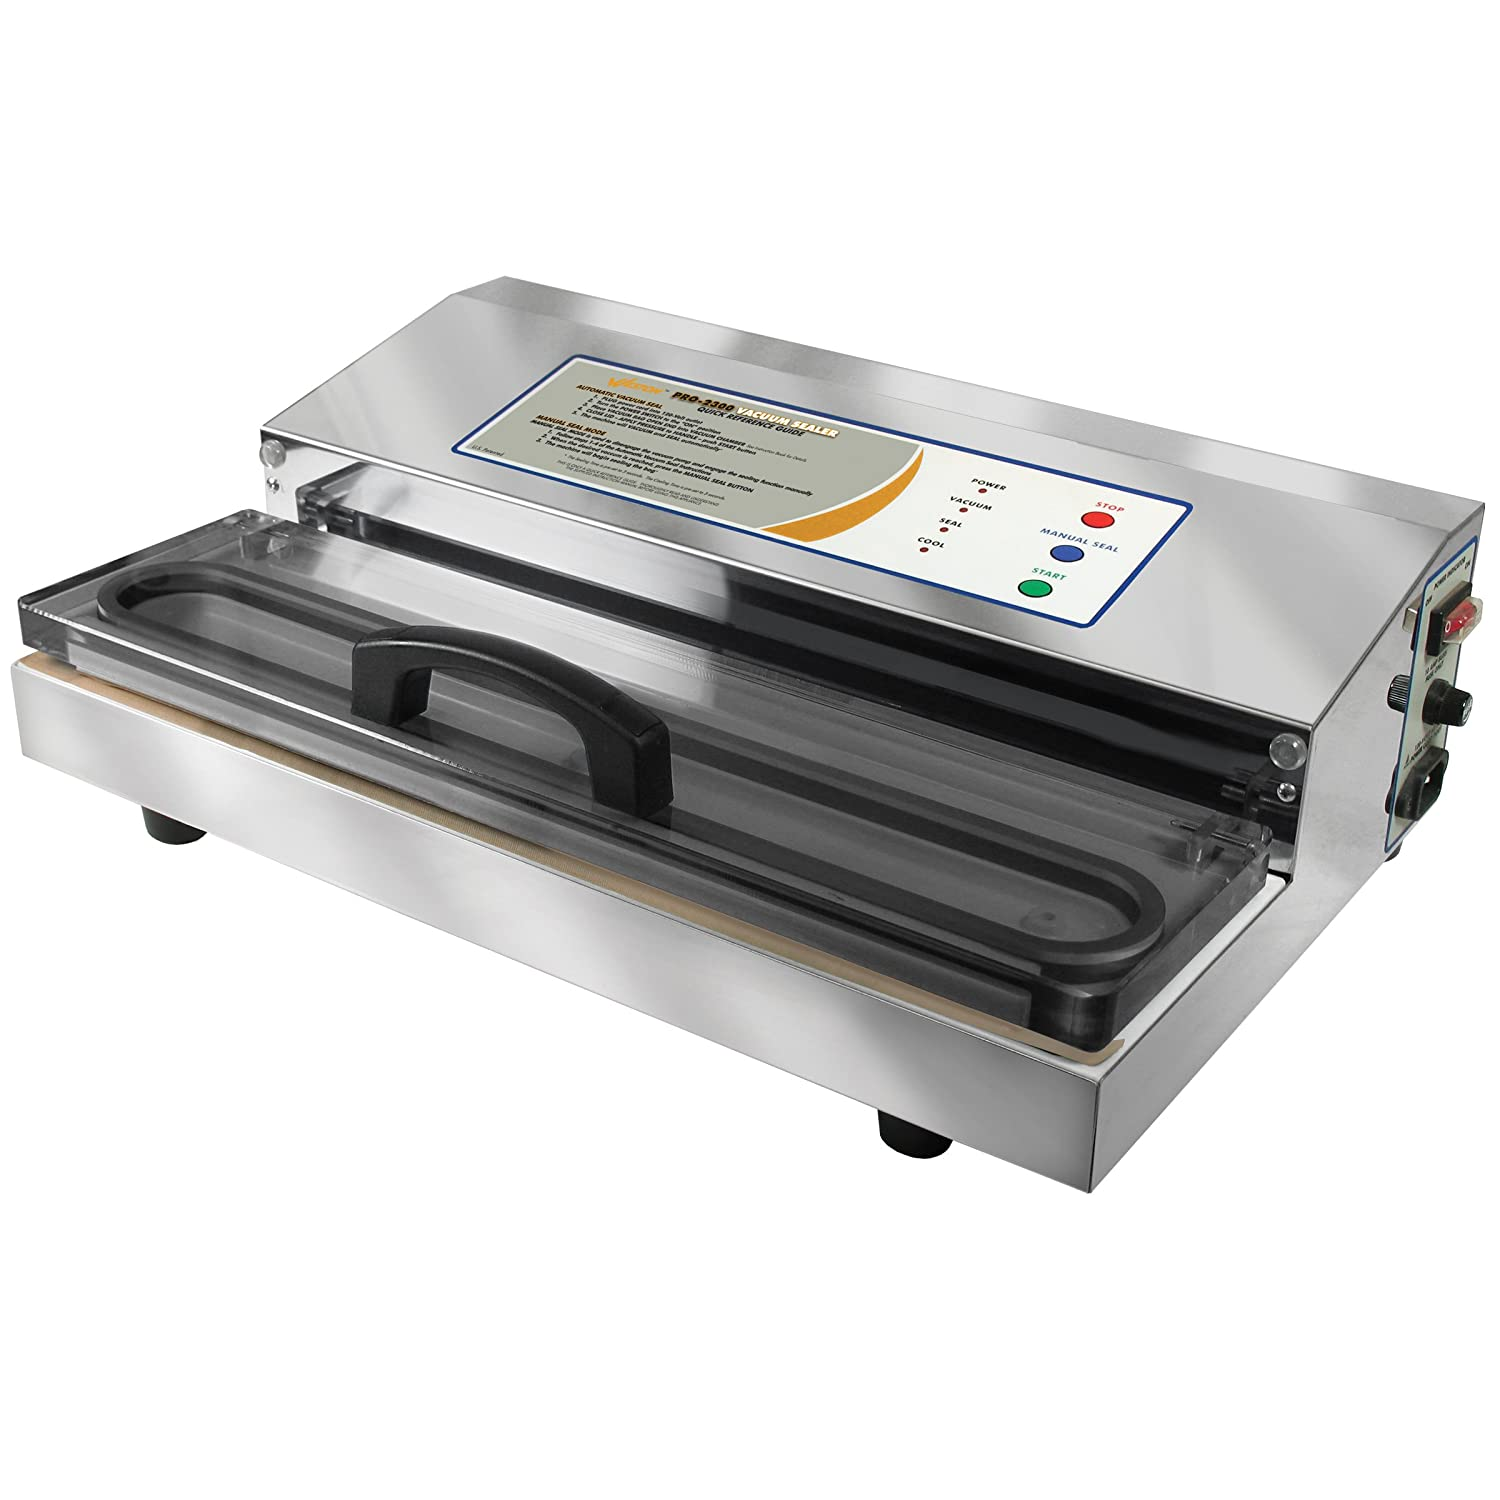 Weston Vacuum Sealer